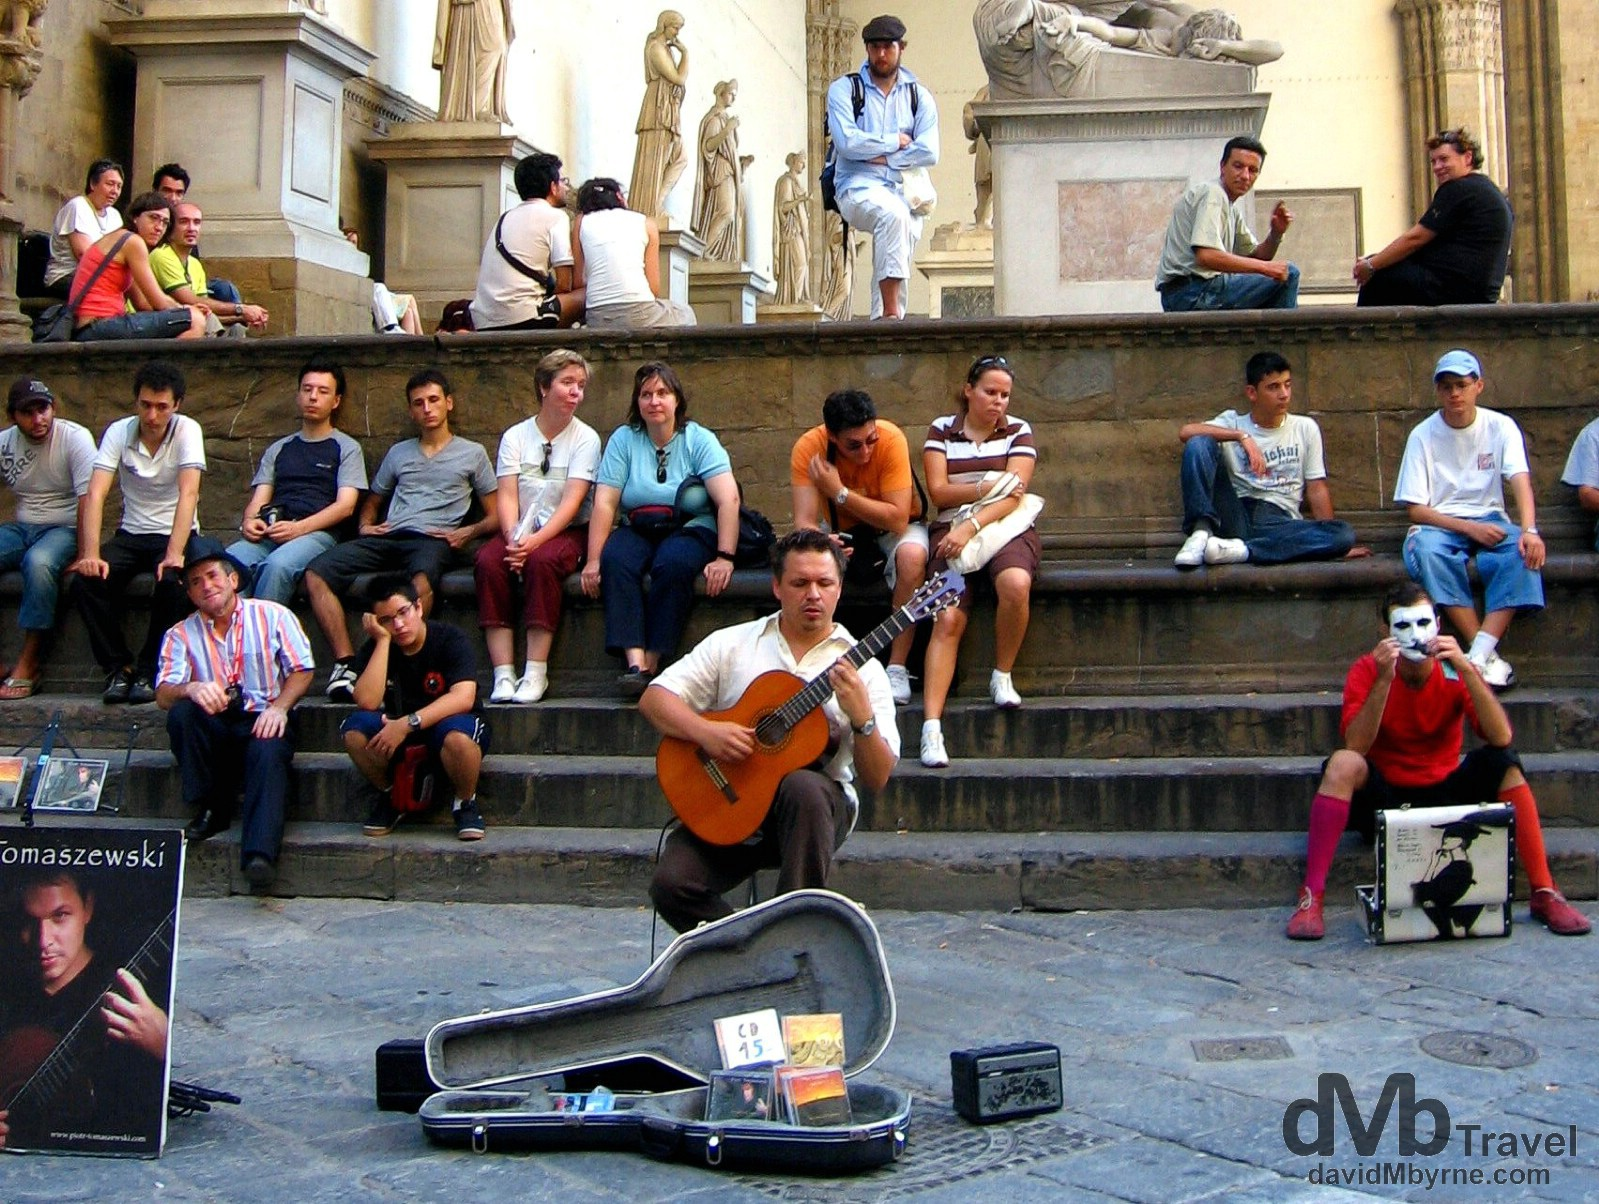 Street performers Piazza della Signoria, Florence, Tuscany, Italy. August 28th, 2007.